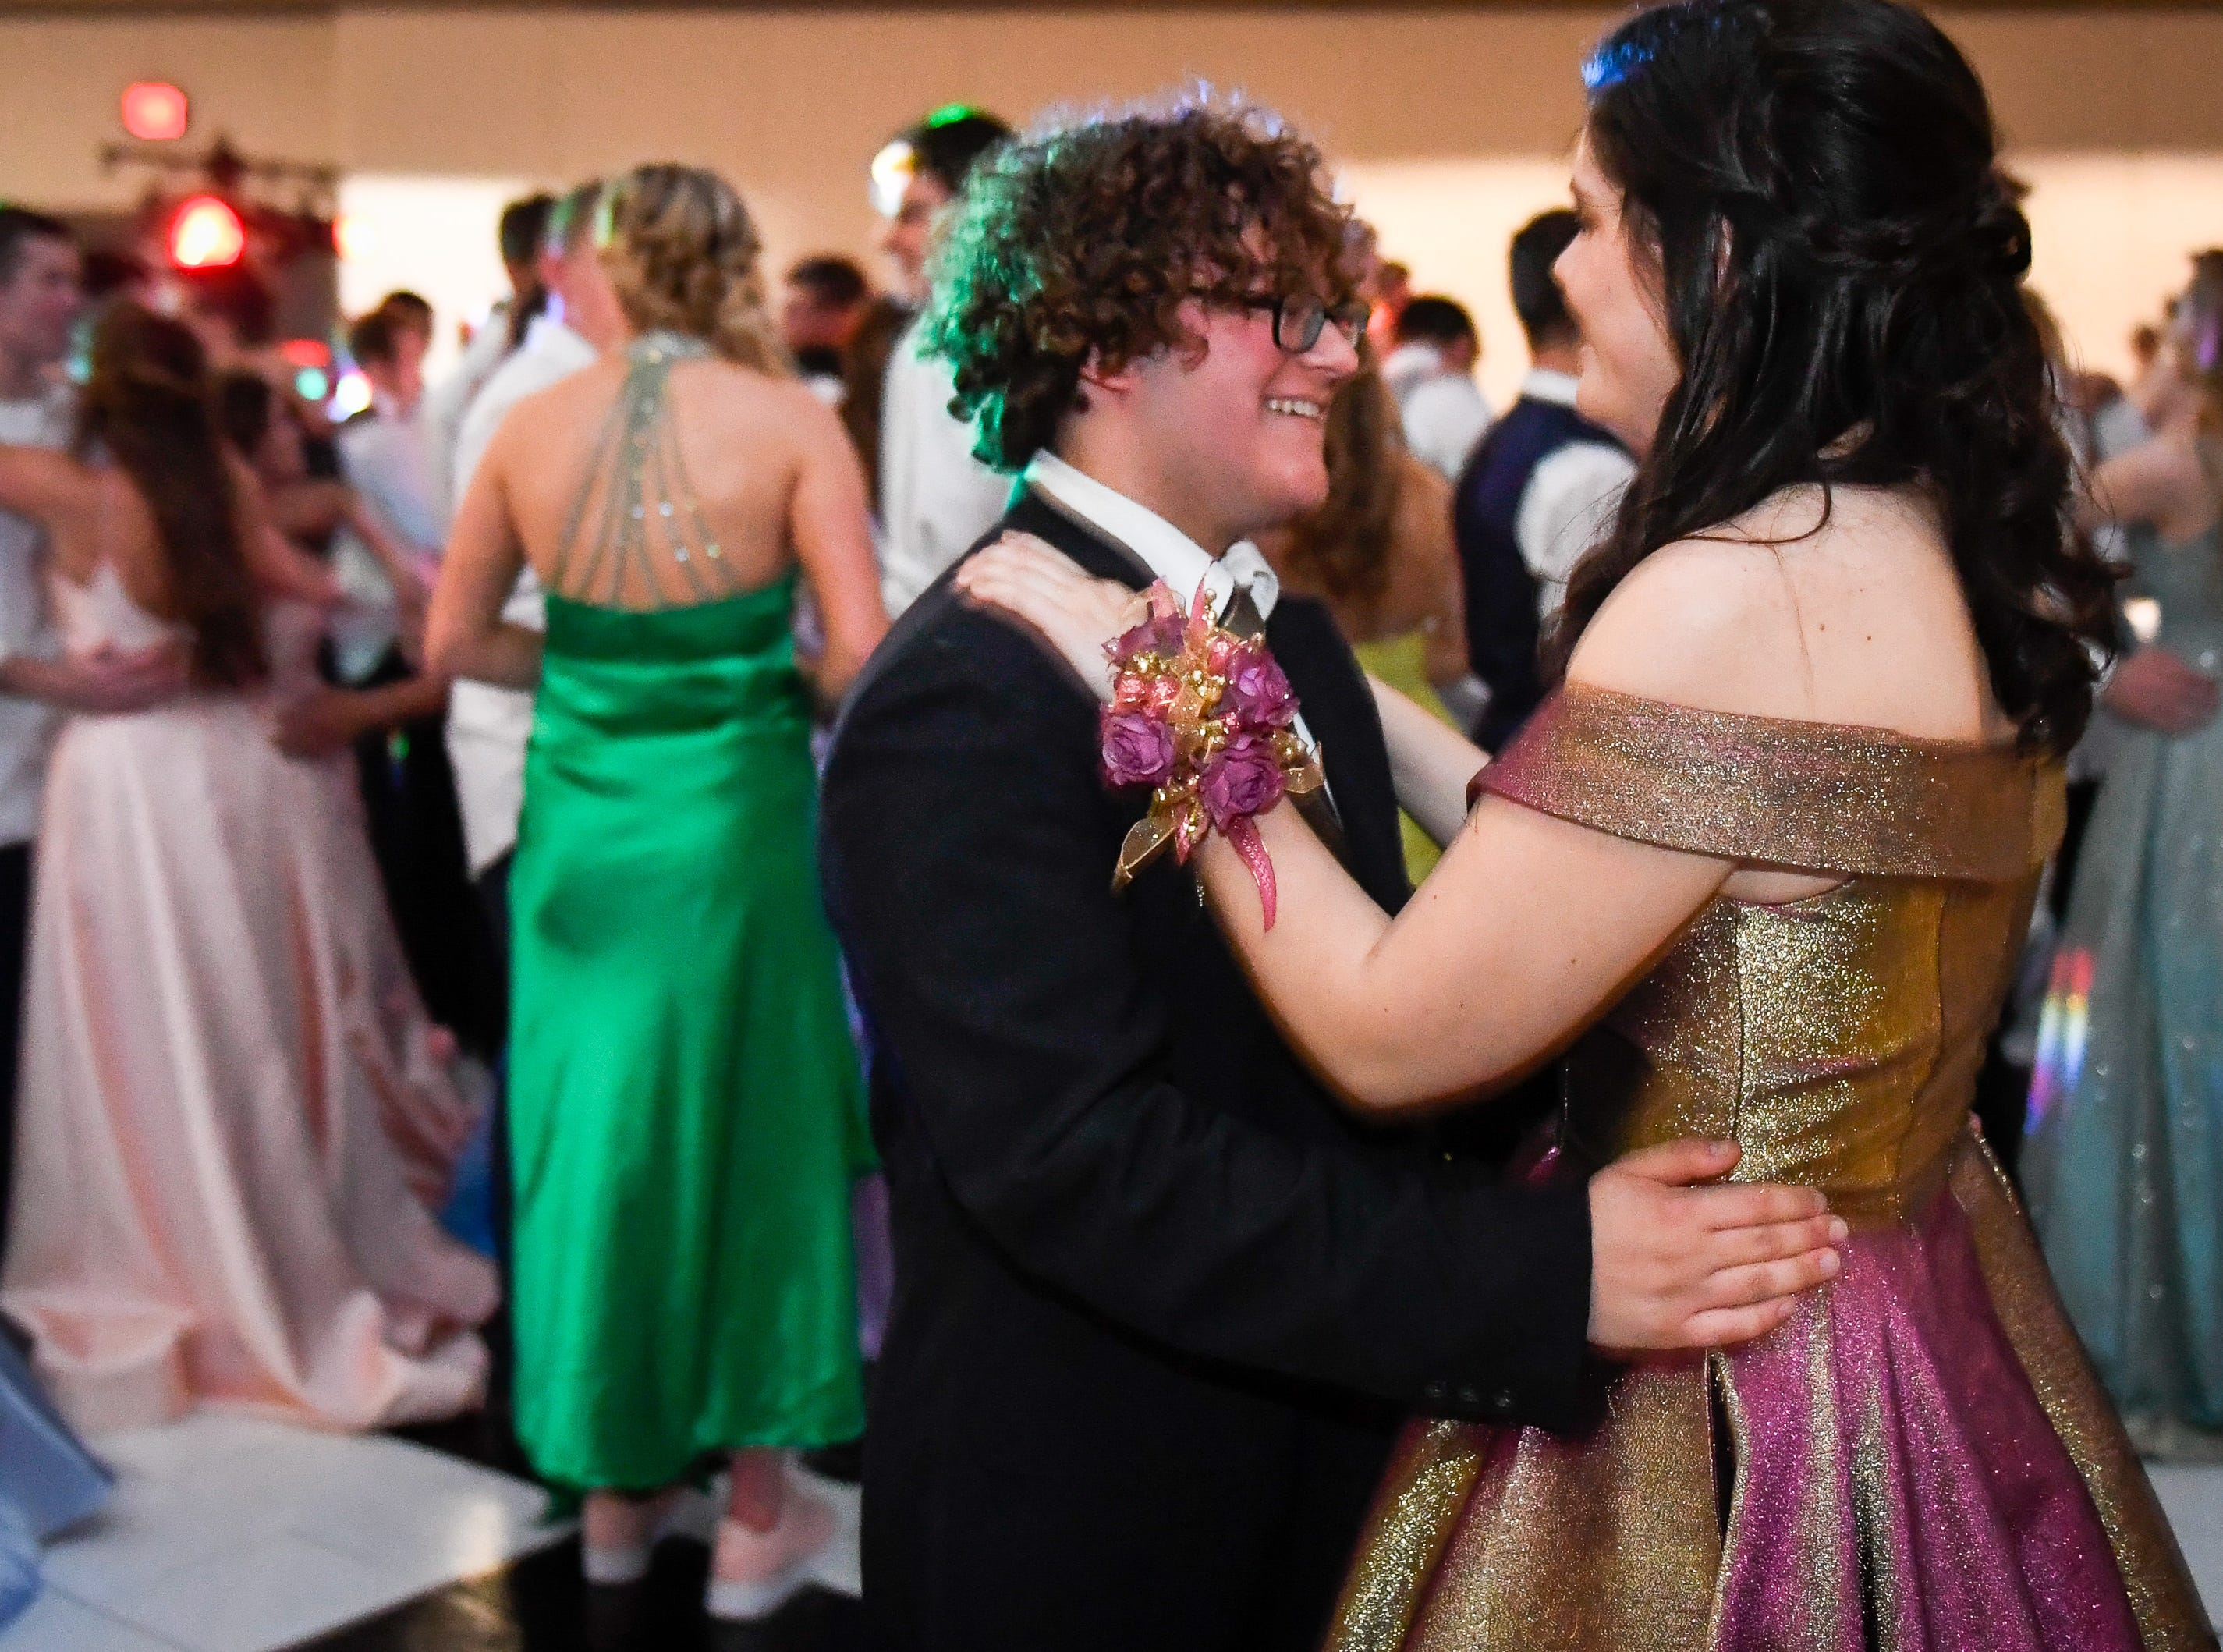 Jordan Nouri and Abby Nunn dancing at the Memorial High School prom, held at the Old National Events Center Plaza Saturday, April 27, 2019.